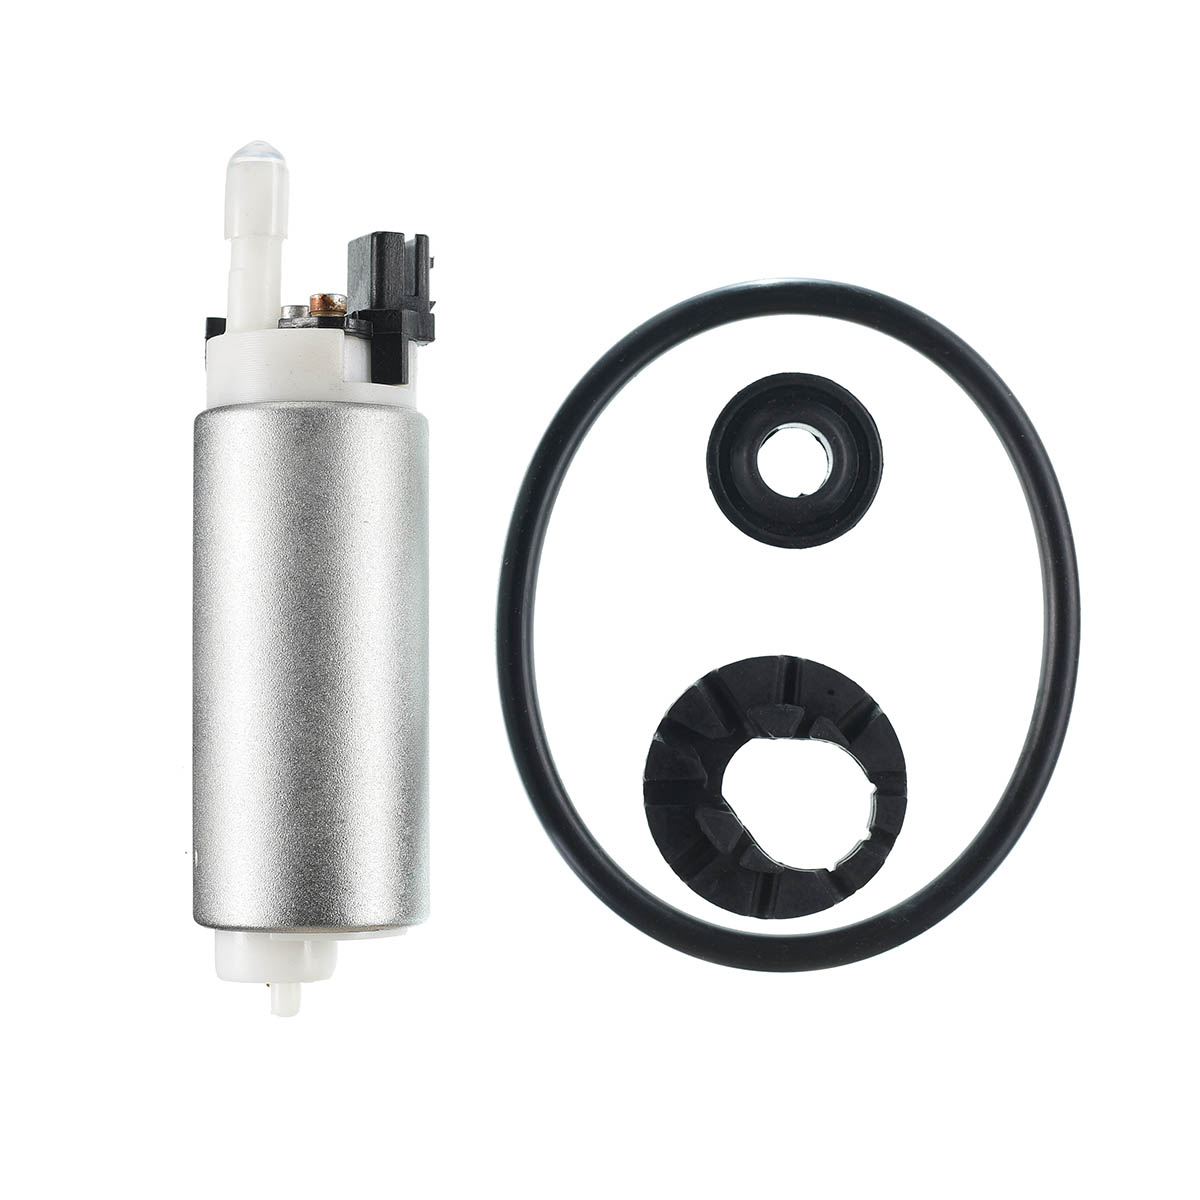 medium resolution of fuel pump for chevrolet beretta cavalier corsica oldsmobile achieva pontiac grand am sunbird buick skylark 92 95 25028921 e3313